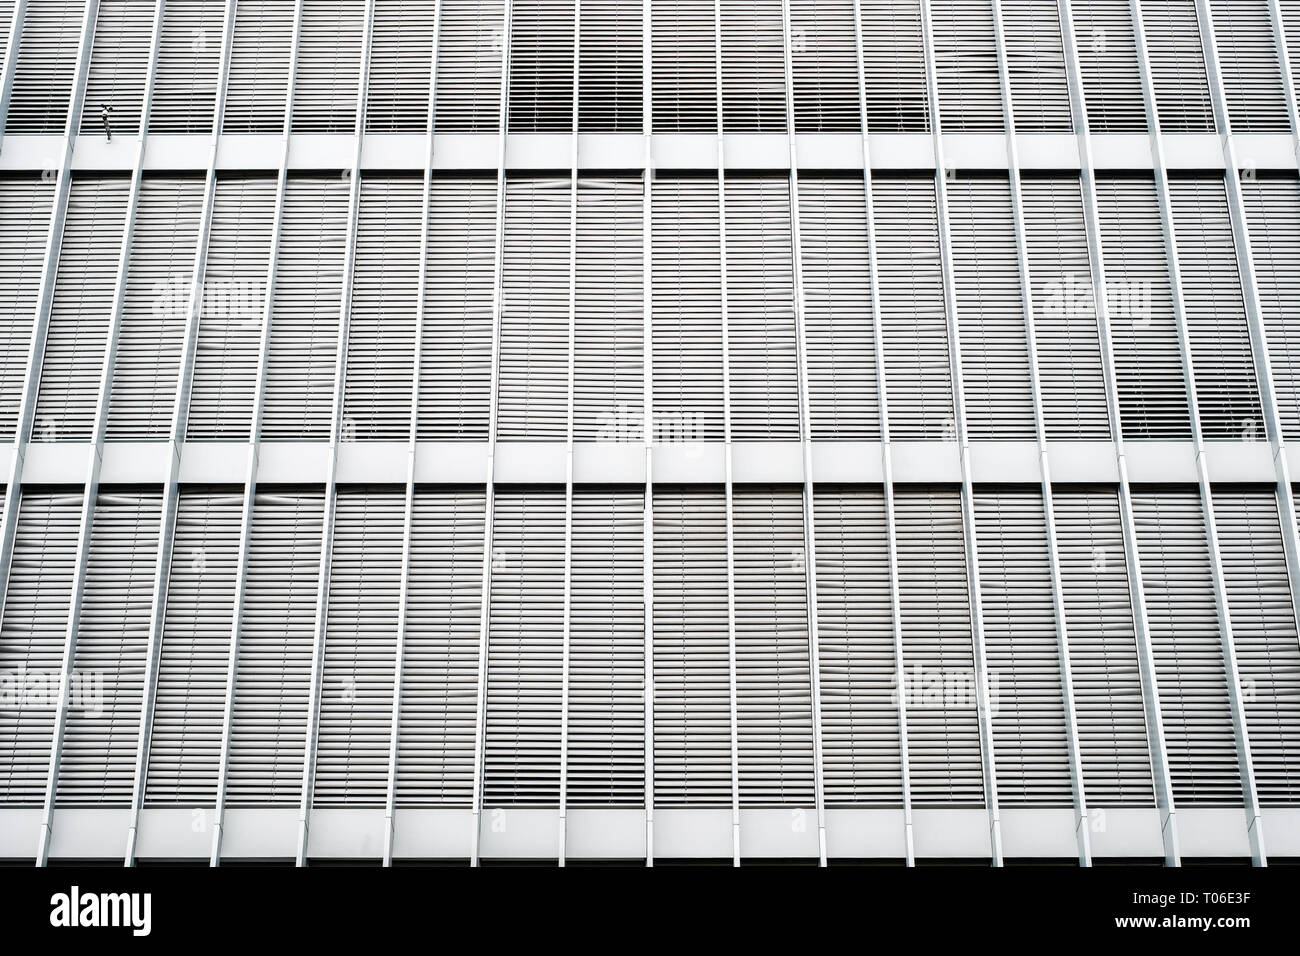 Closed Sun Blinds On Office Building Facade Shutters On Building Exterior Real Estate Background Stock Photo Alamy